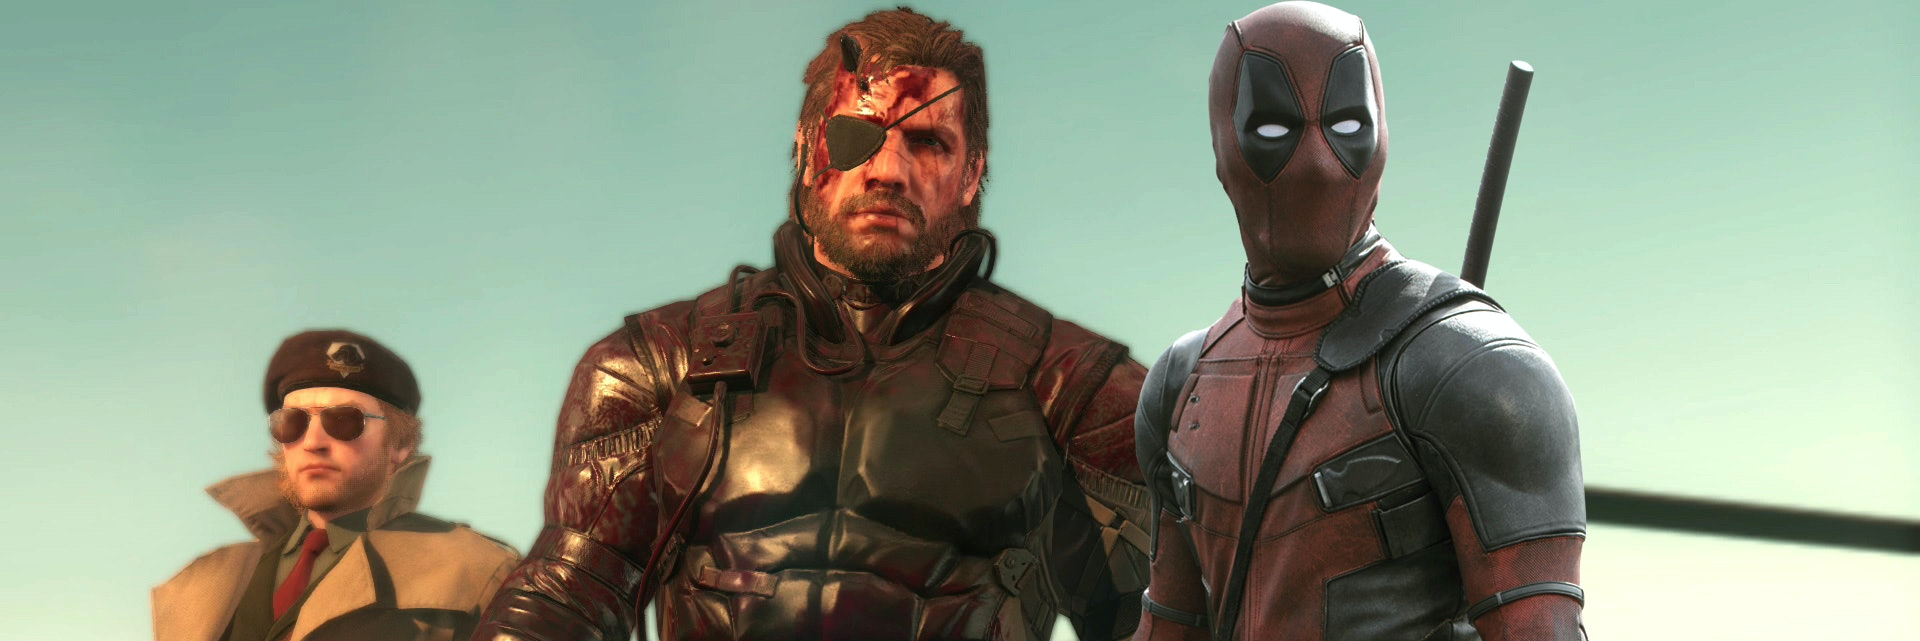 Deadpool Metal Gear Solid